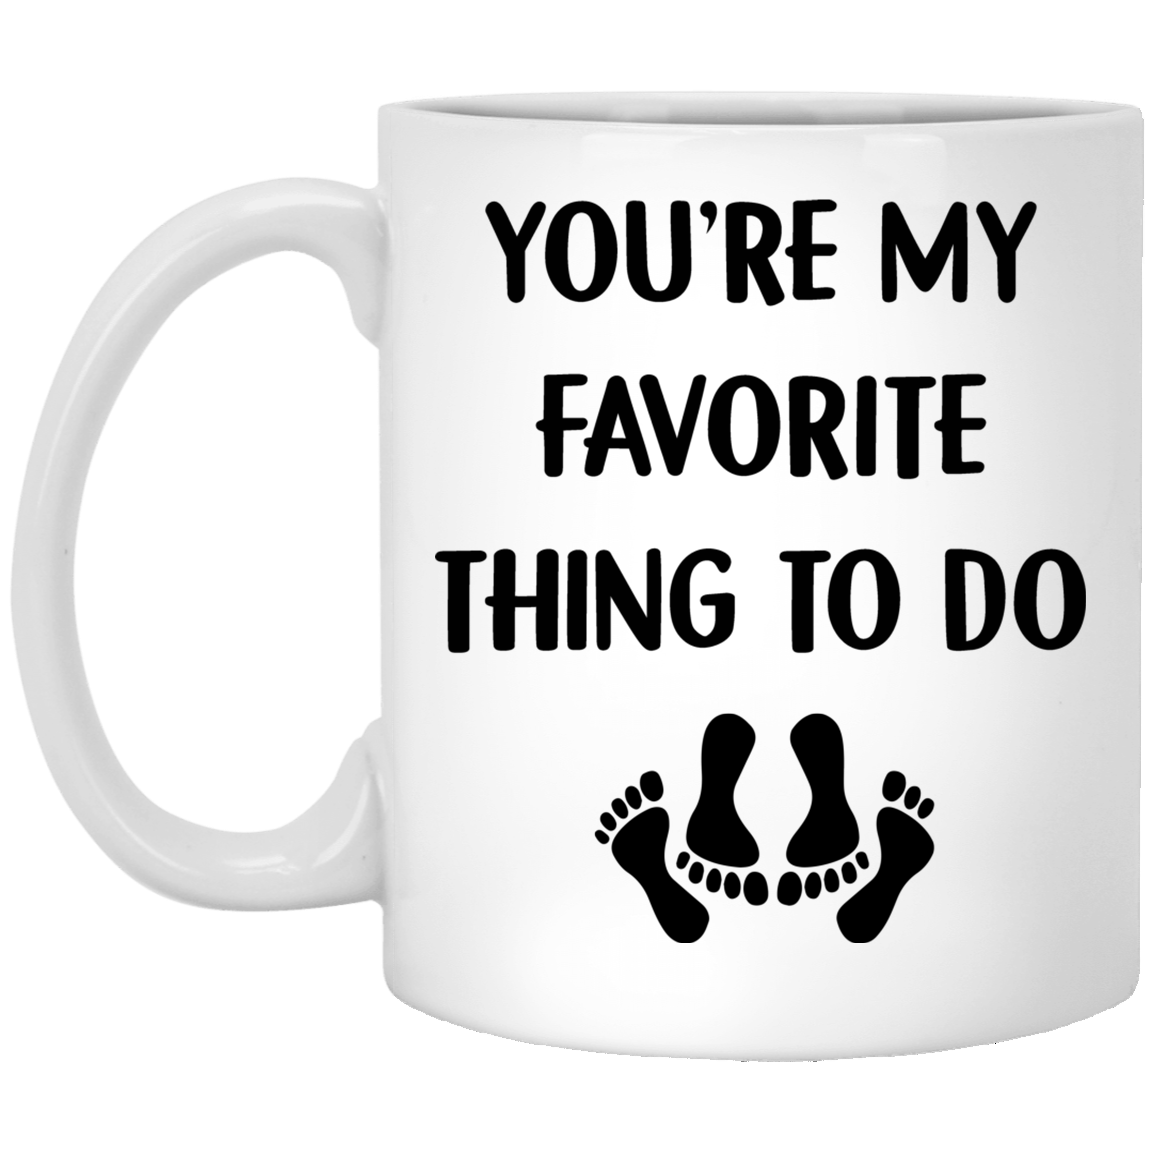 You're my favorite thing to do - Funny Valentine's gift Funny Quotes Coffee Mug 99promocode